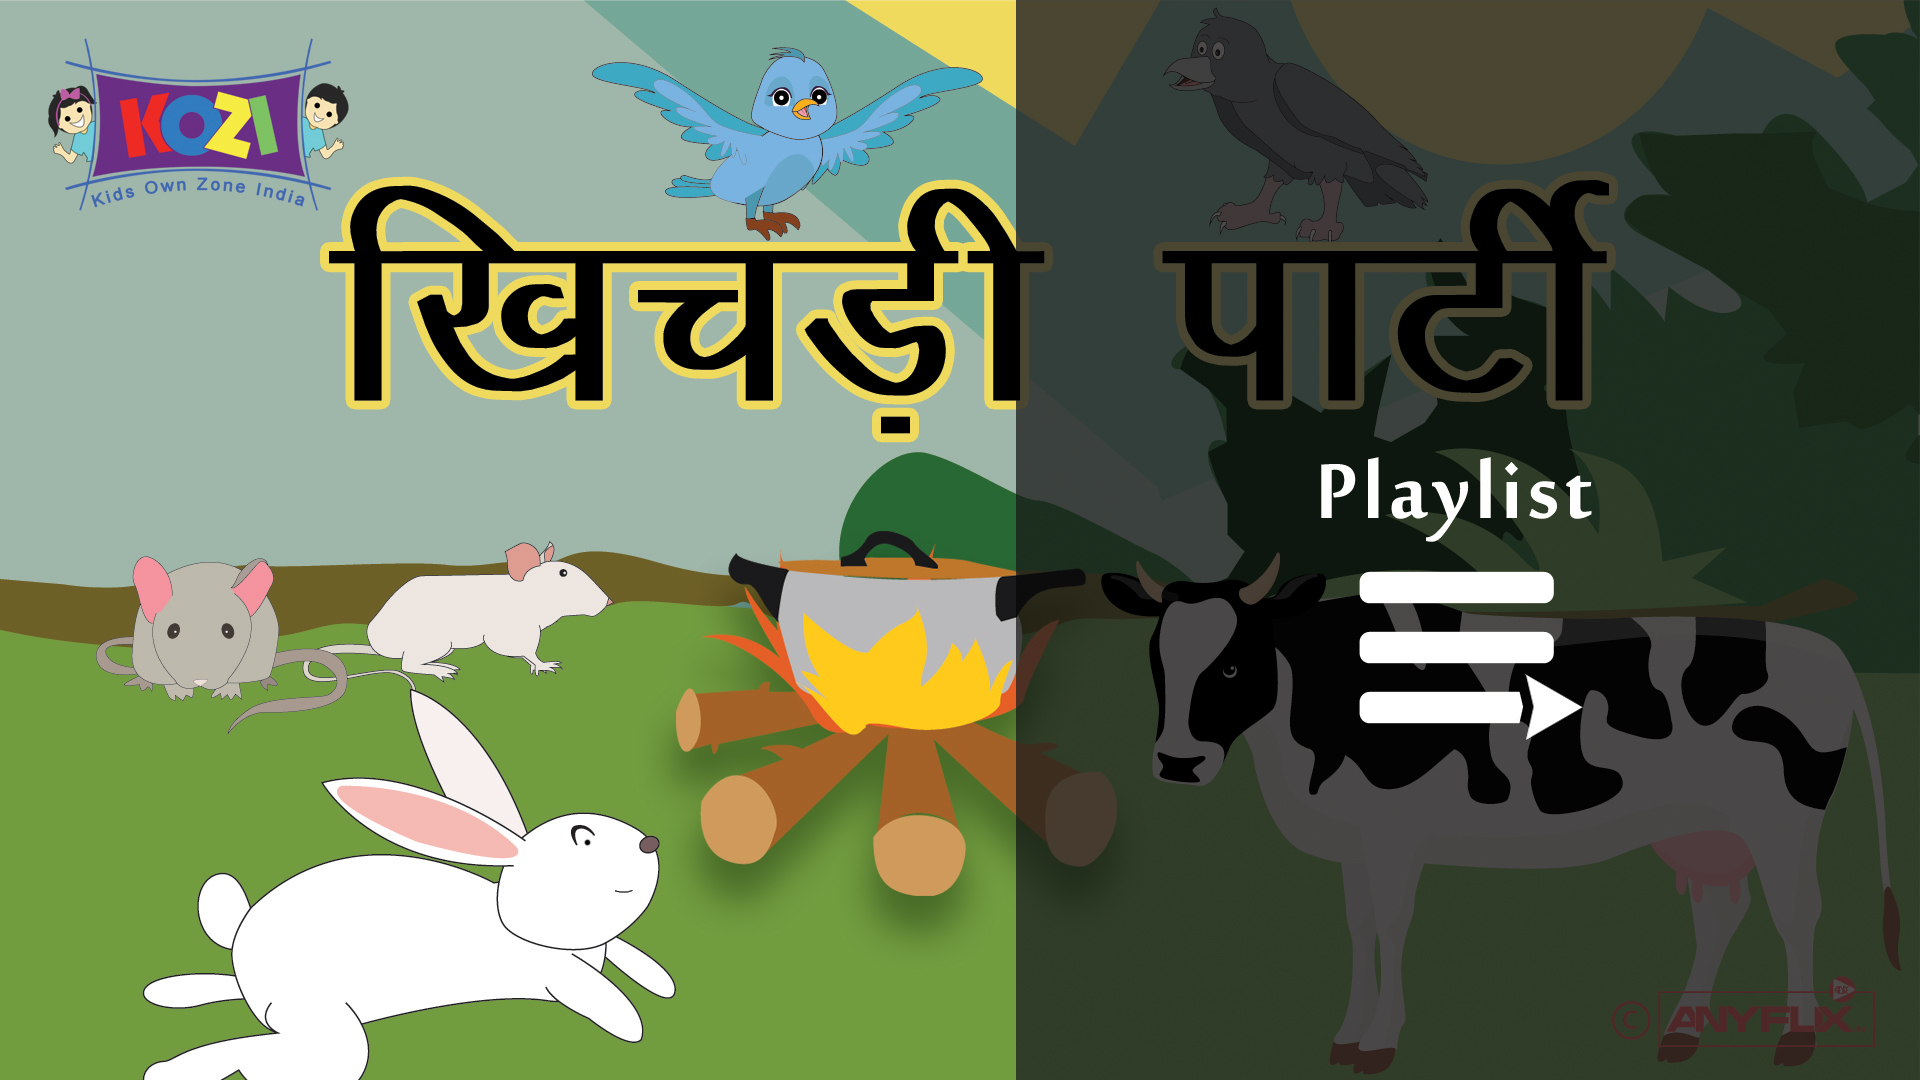 Moral Stories For Kids | Full Playlist | Kids Own Zone India (KOZI)